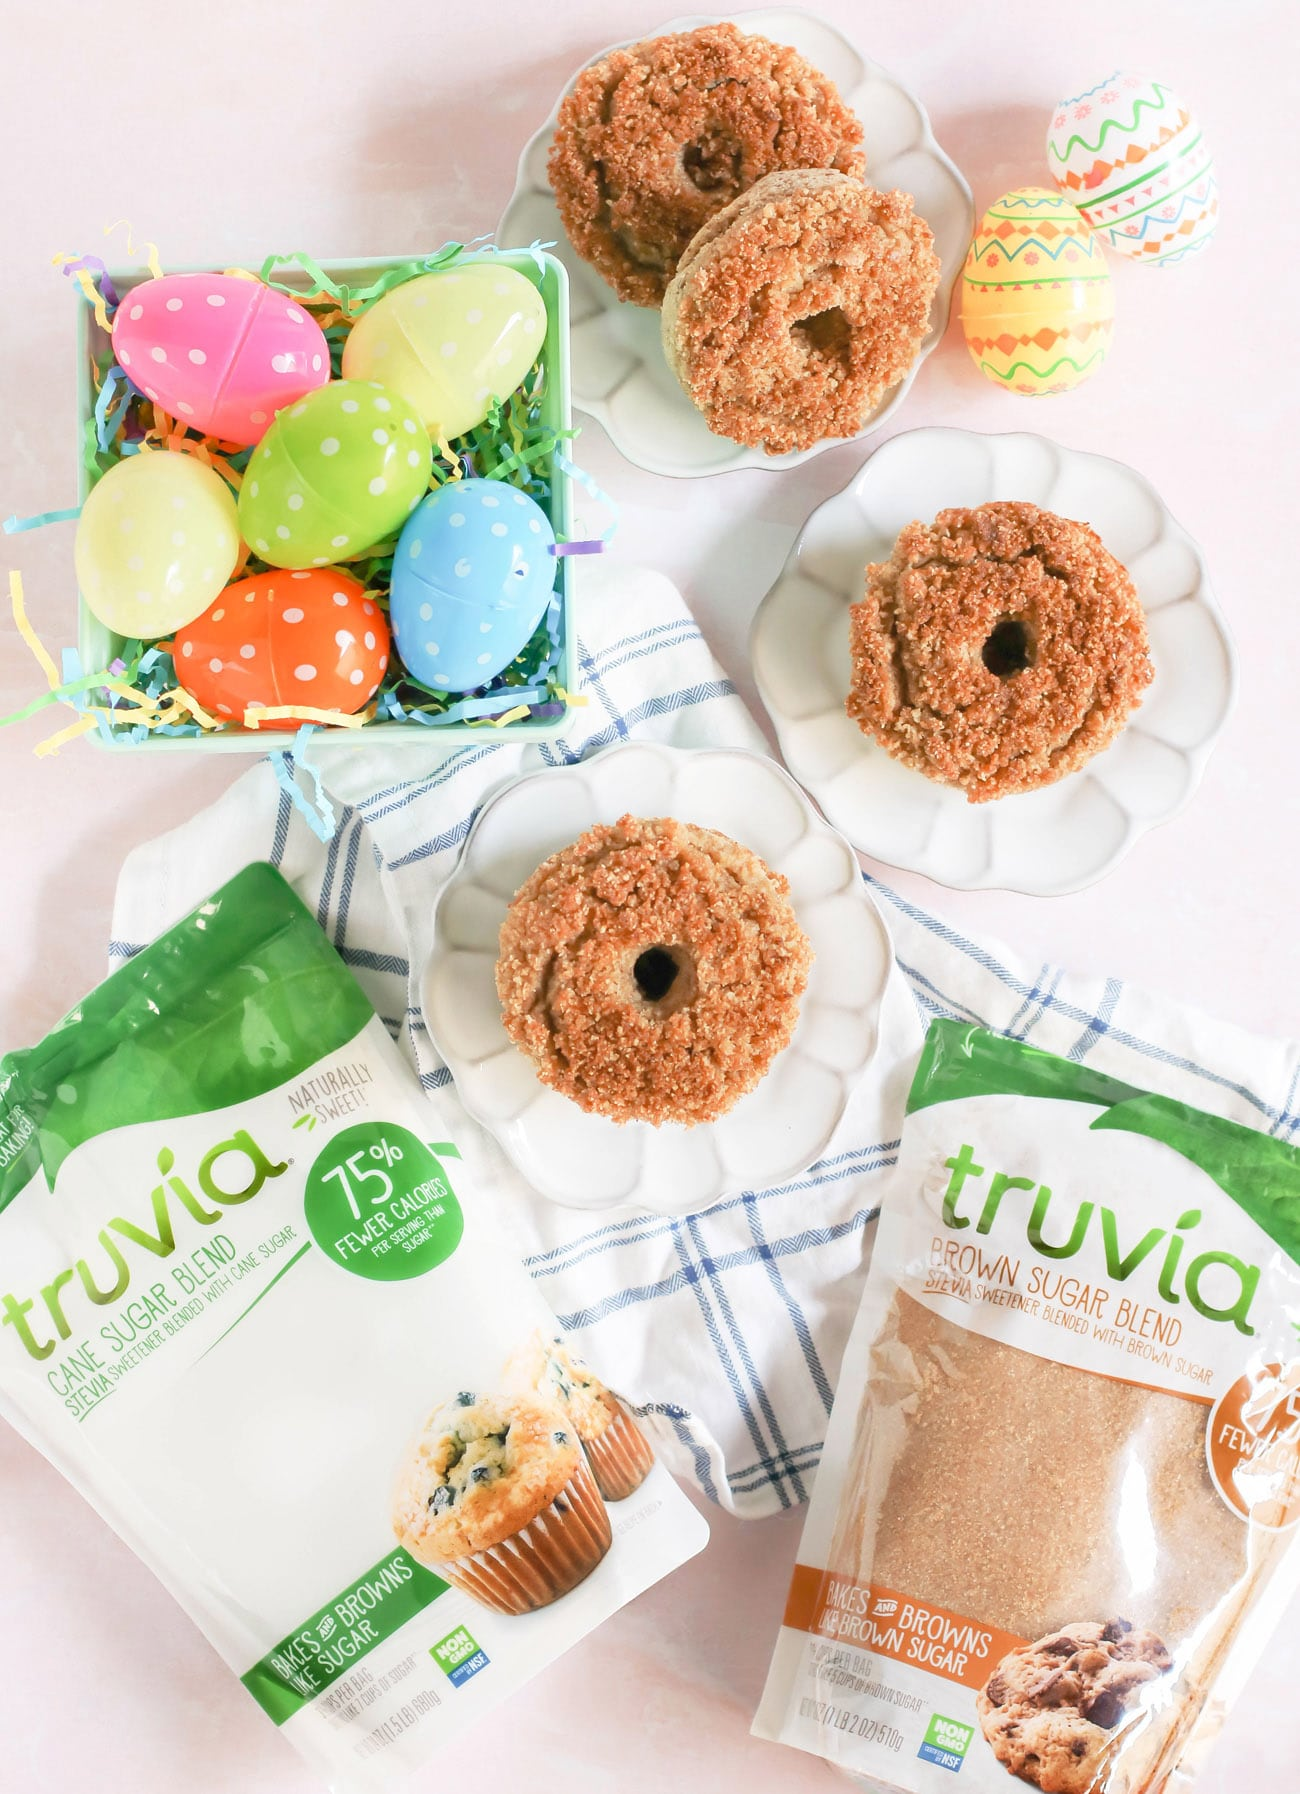 These easy BakedCrumb Donuts are rich, sweet, full of vanilla flavor, and a coffee cake-like crumb topping. Every bite is buttery and satisfying. You'd never know these donuts are gluten free, high in protein and fiber, and made with less sugar than regular donuts, thanks to using the Truvia Cane Sugar Blend and Truvia Brown Sugar Blend!